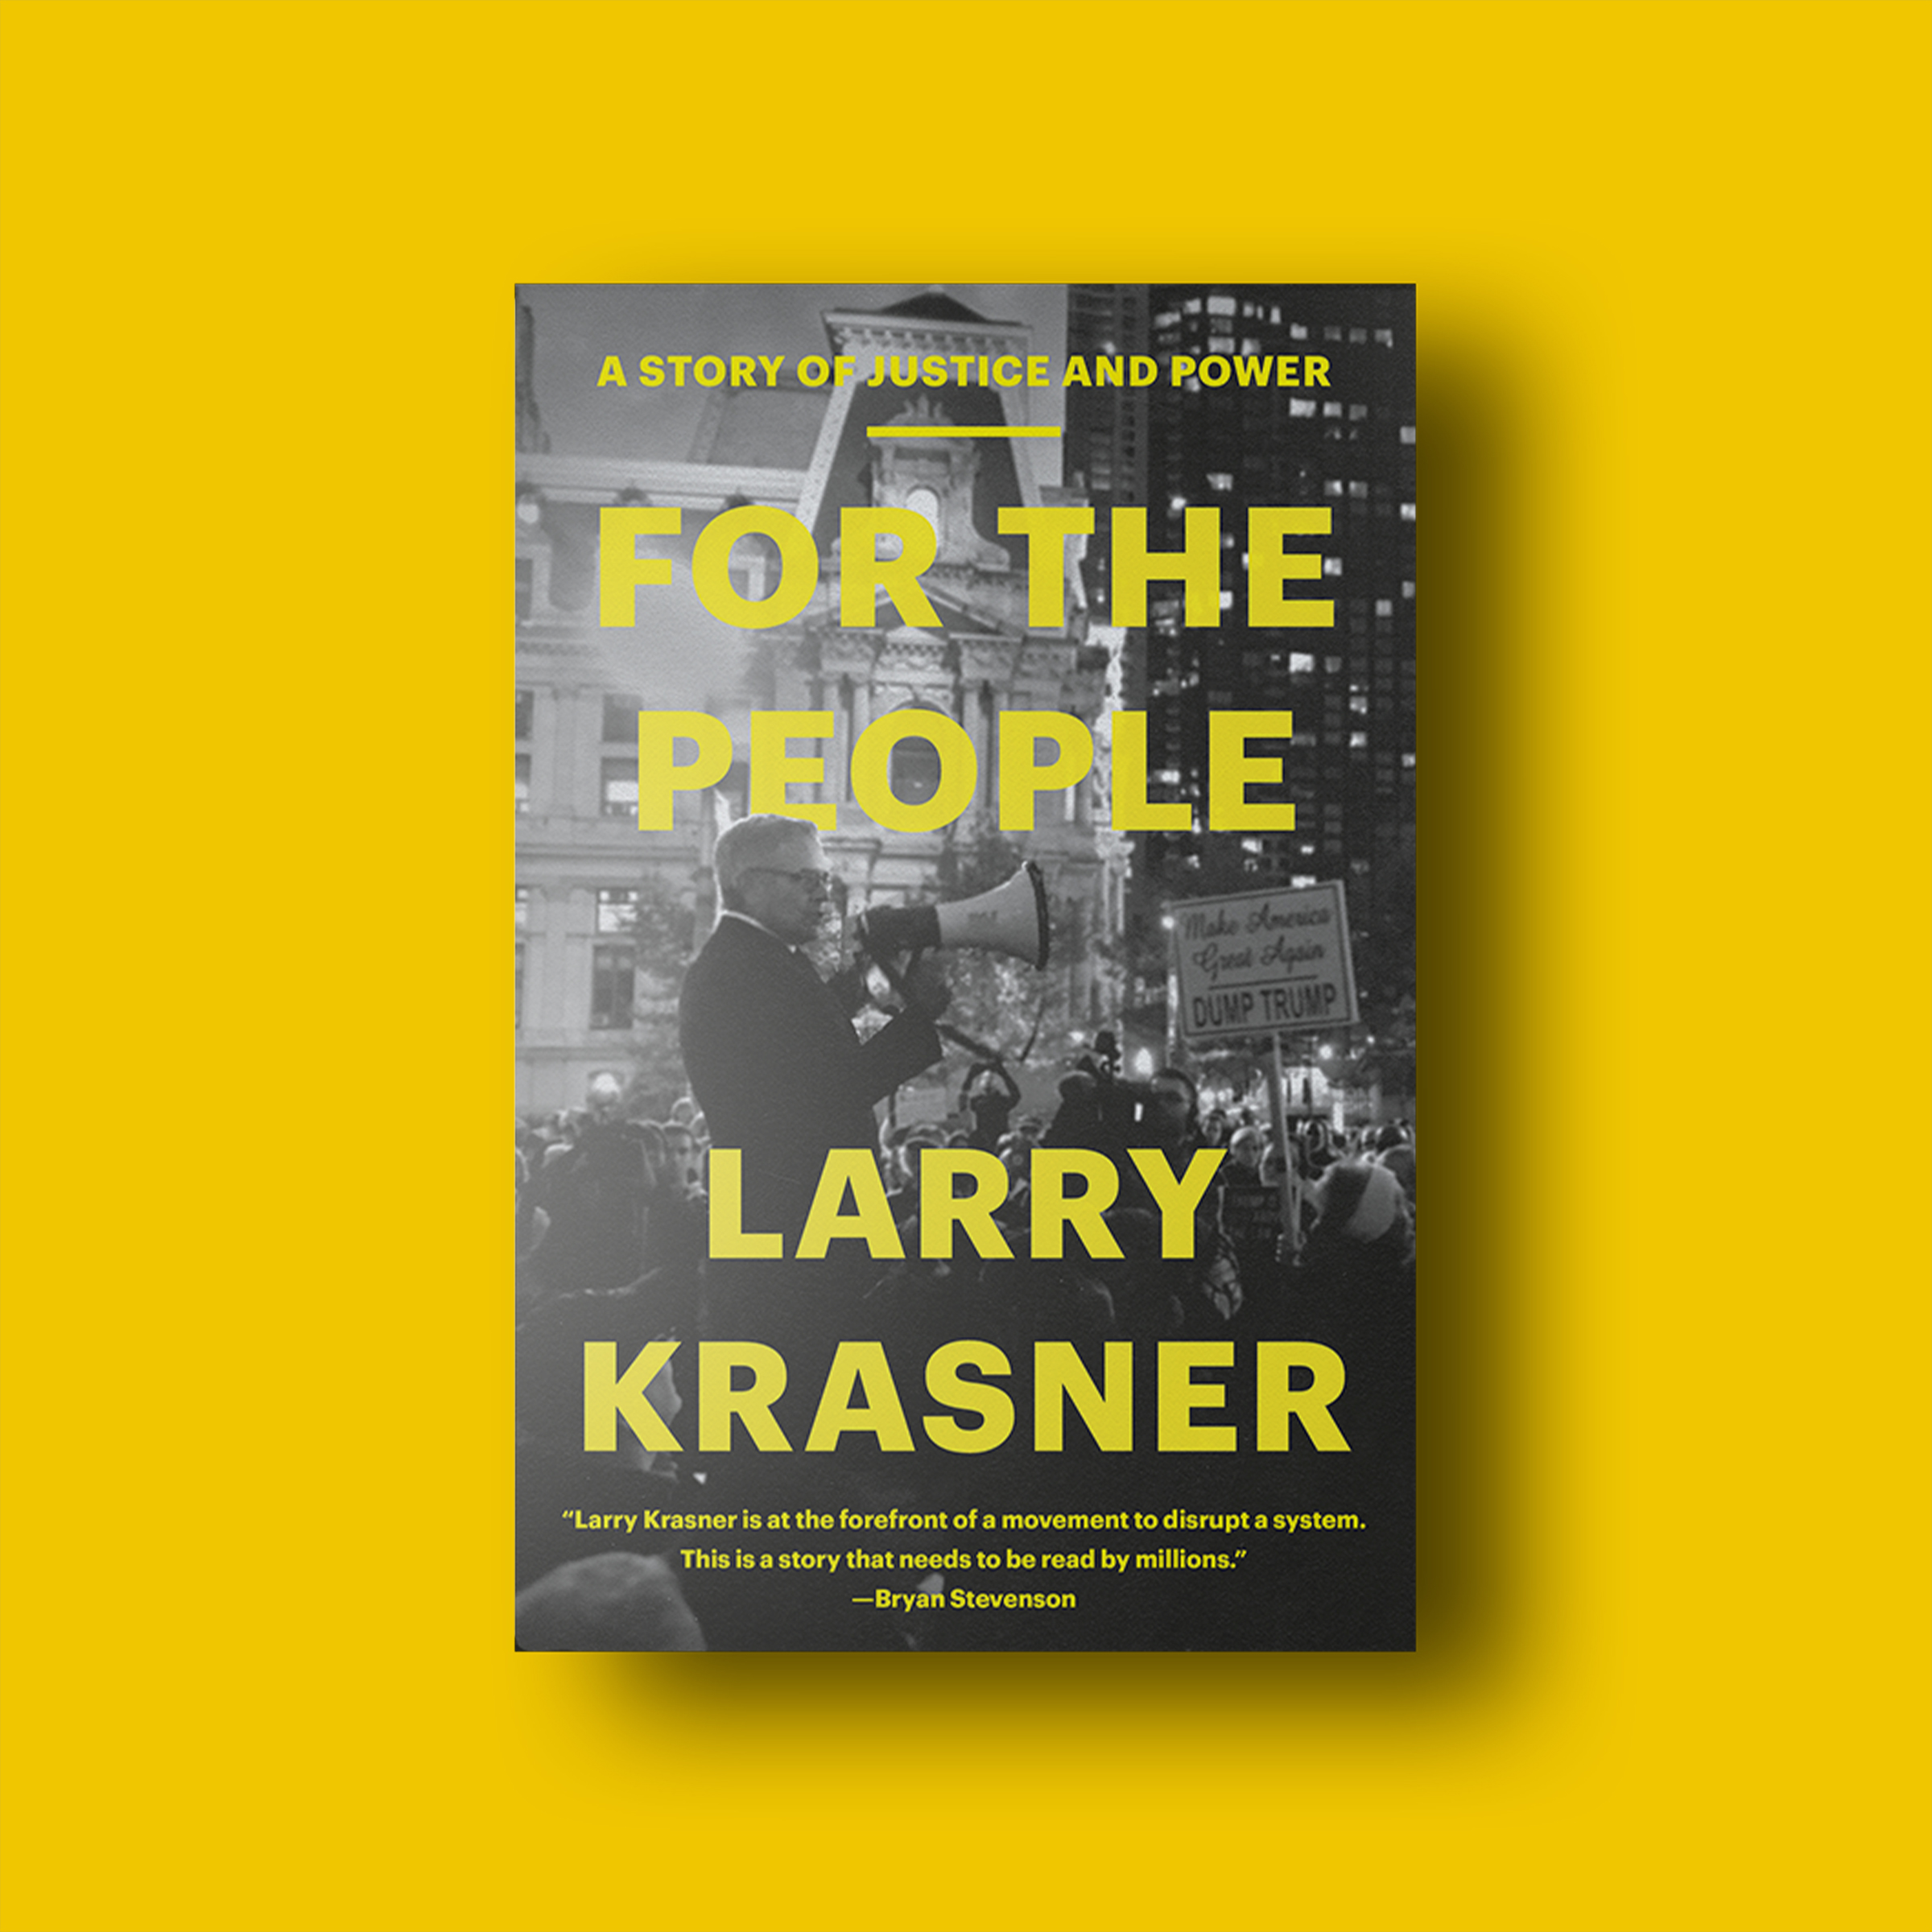 For the People Excerpt